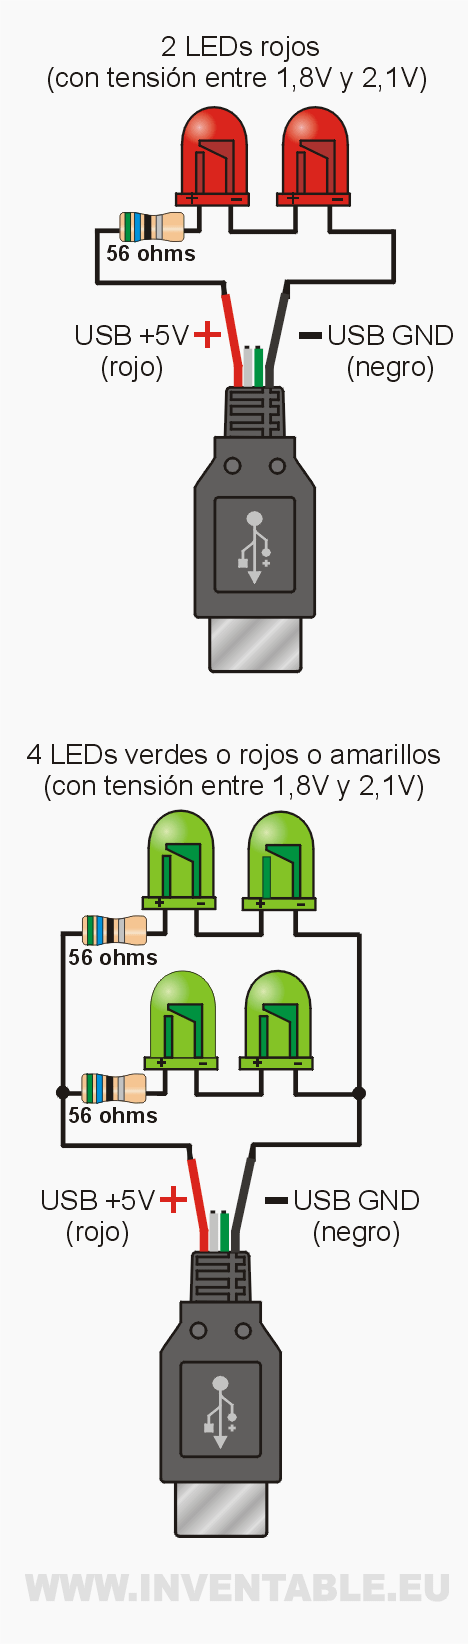 LEDs to USB: all examples